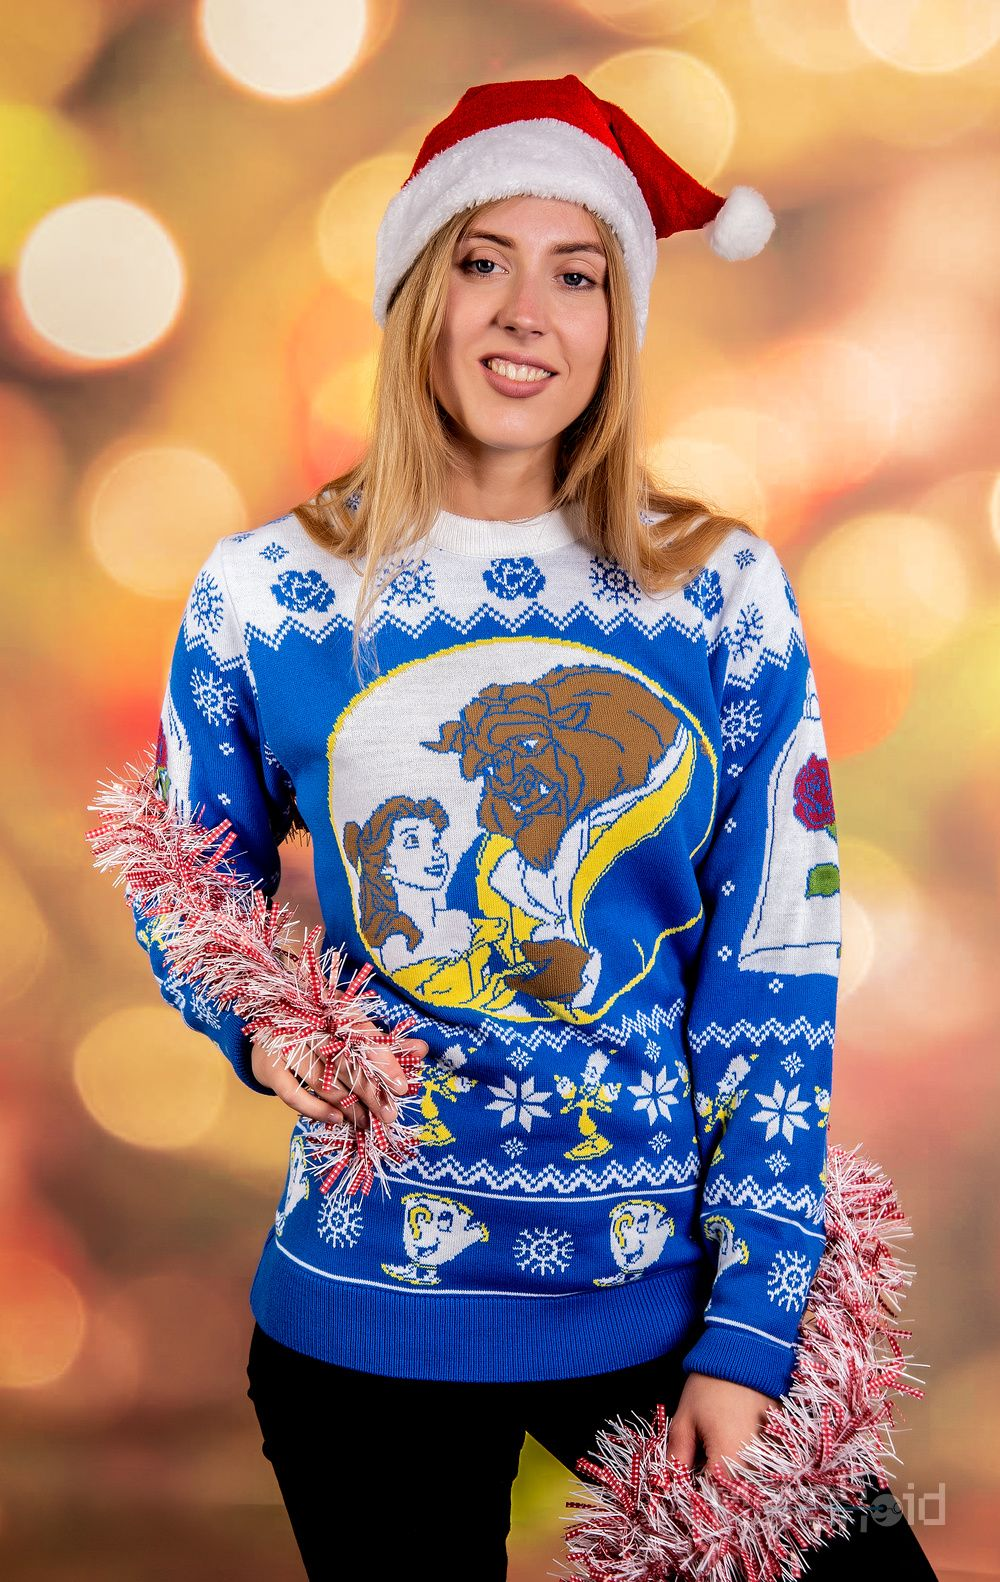 ca873b1a072c Beauty and the Beast: Merry Beastmas Knitted Christmas Sweater/Jumper  Preorder - Merchoid